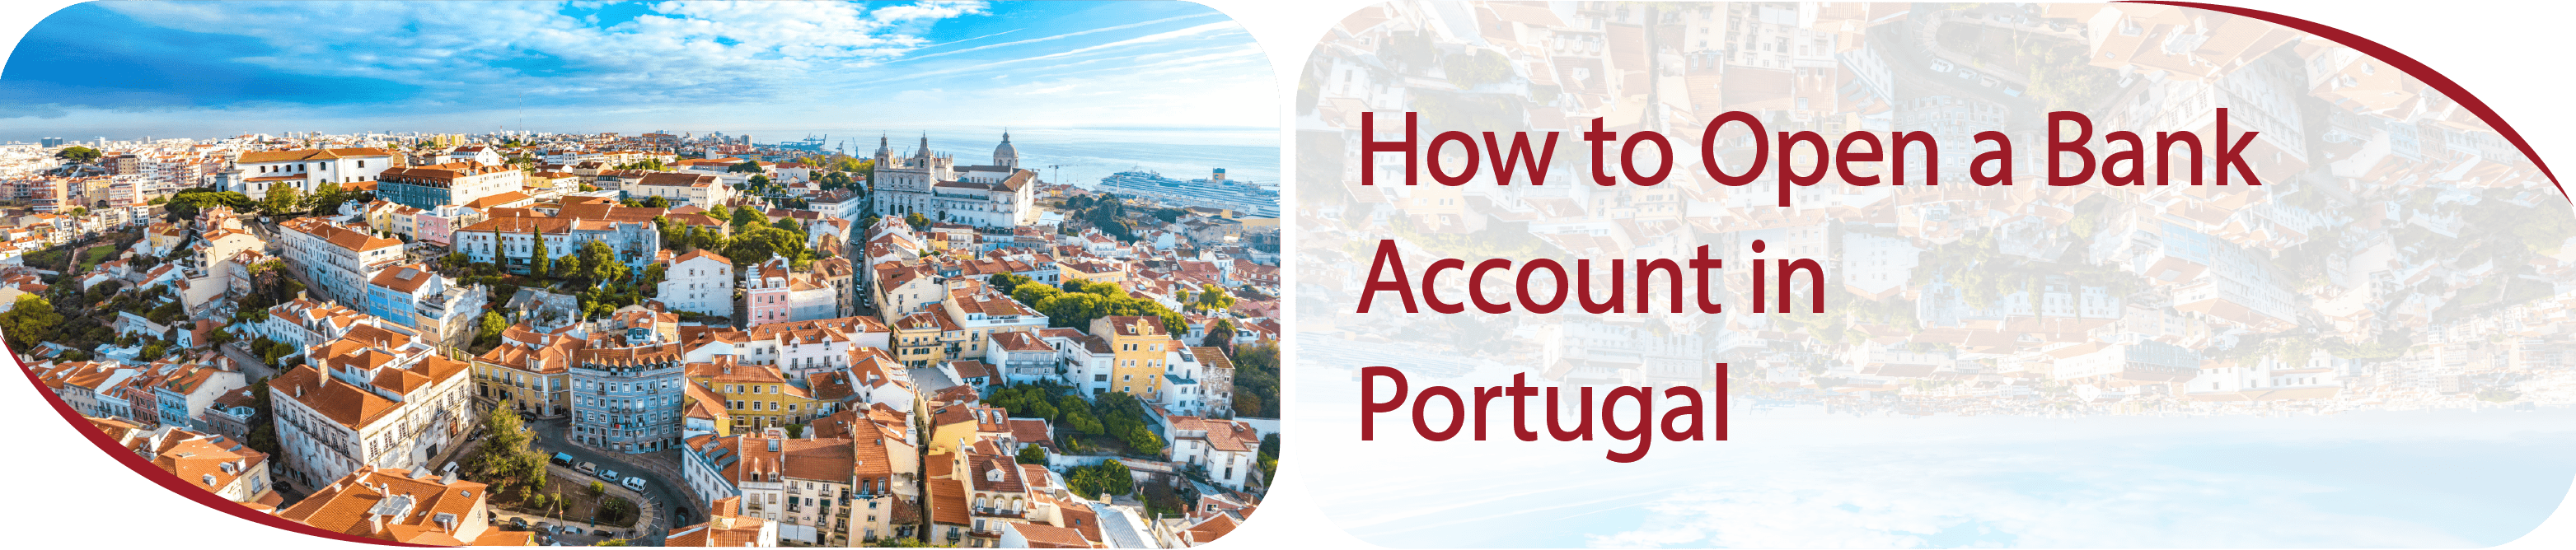 open a bank account in Portugal